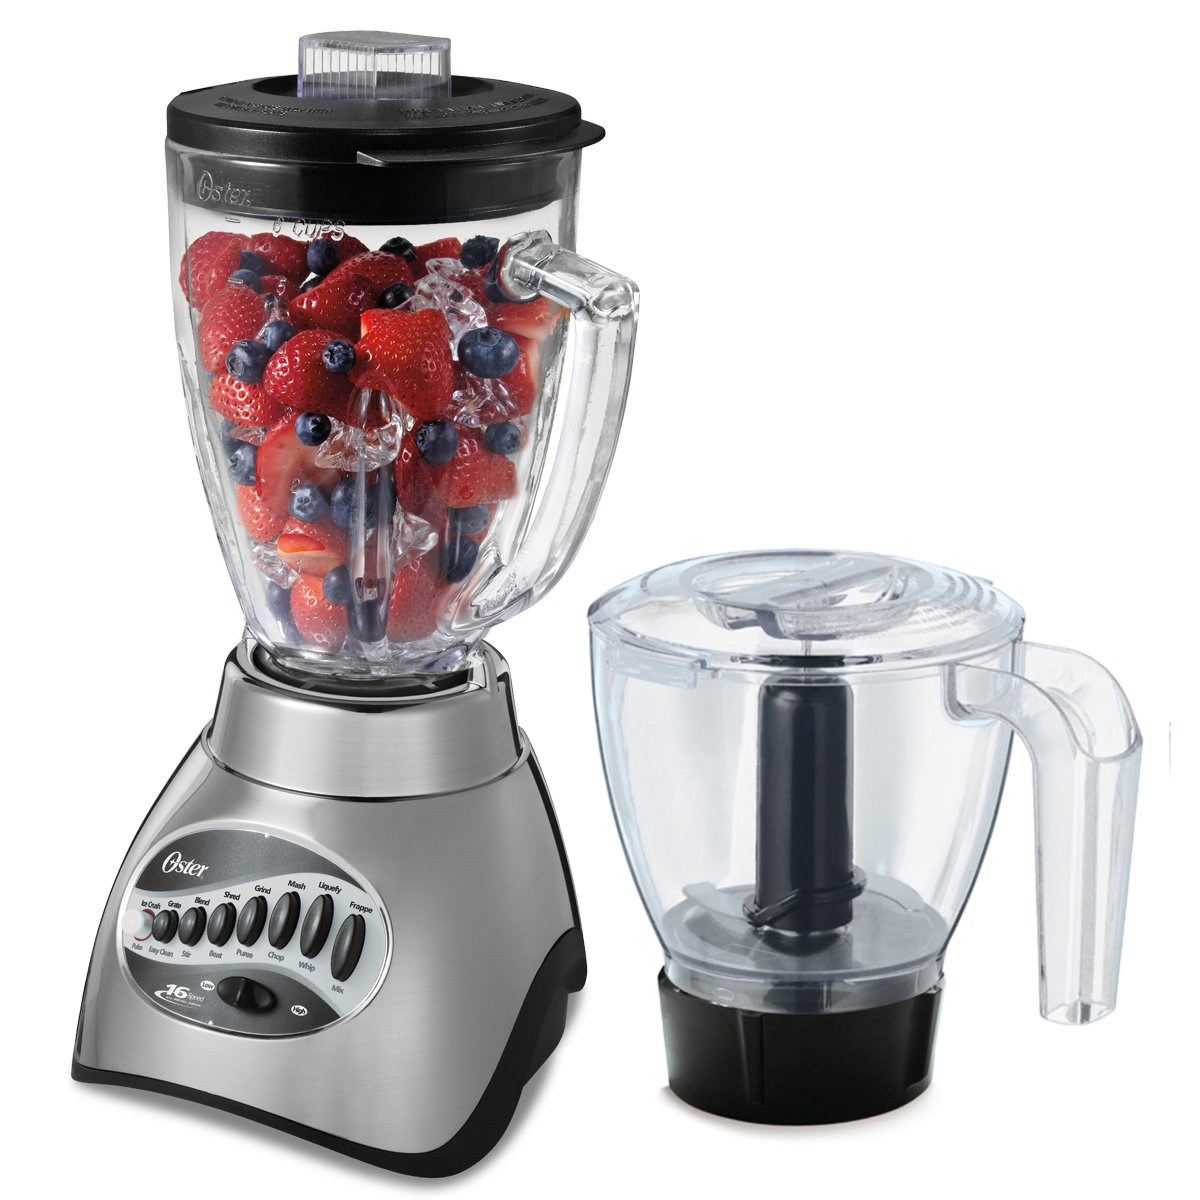 Oster Core 16-Speed Blender with Glass Jar, Black, 006878